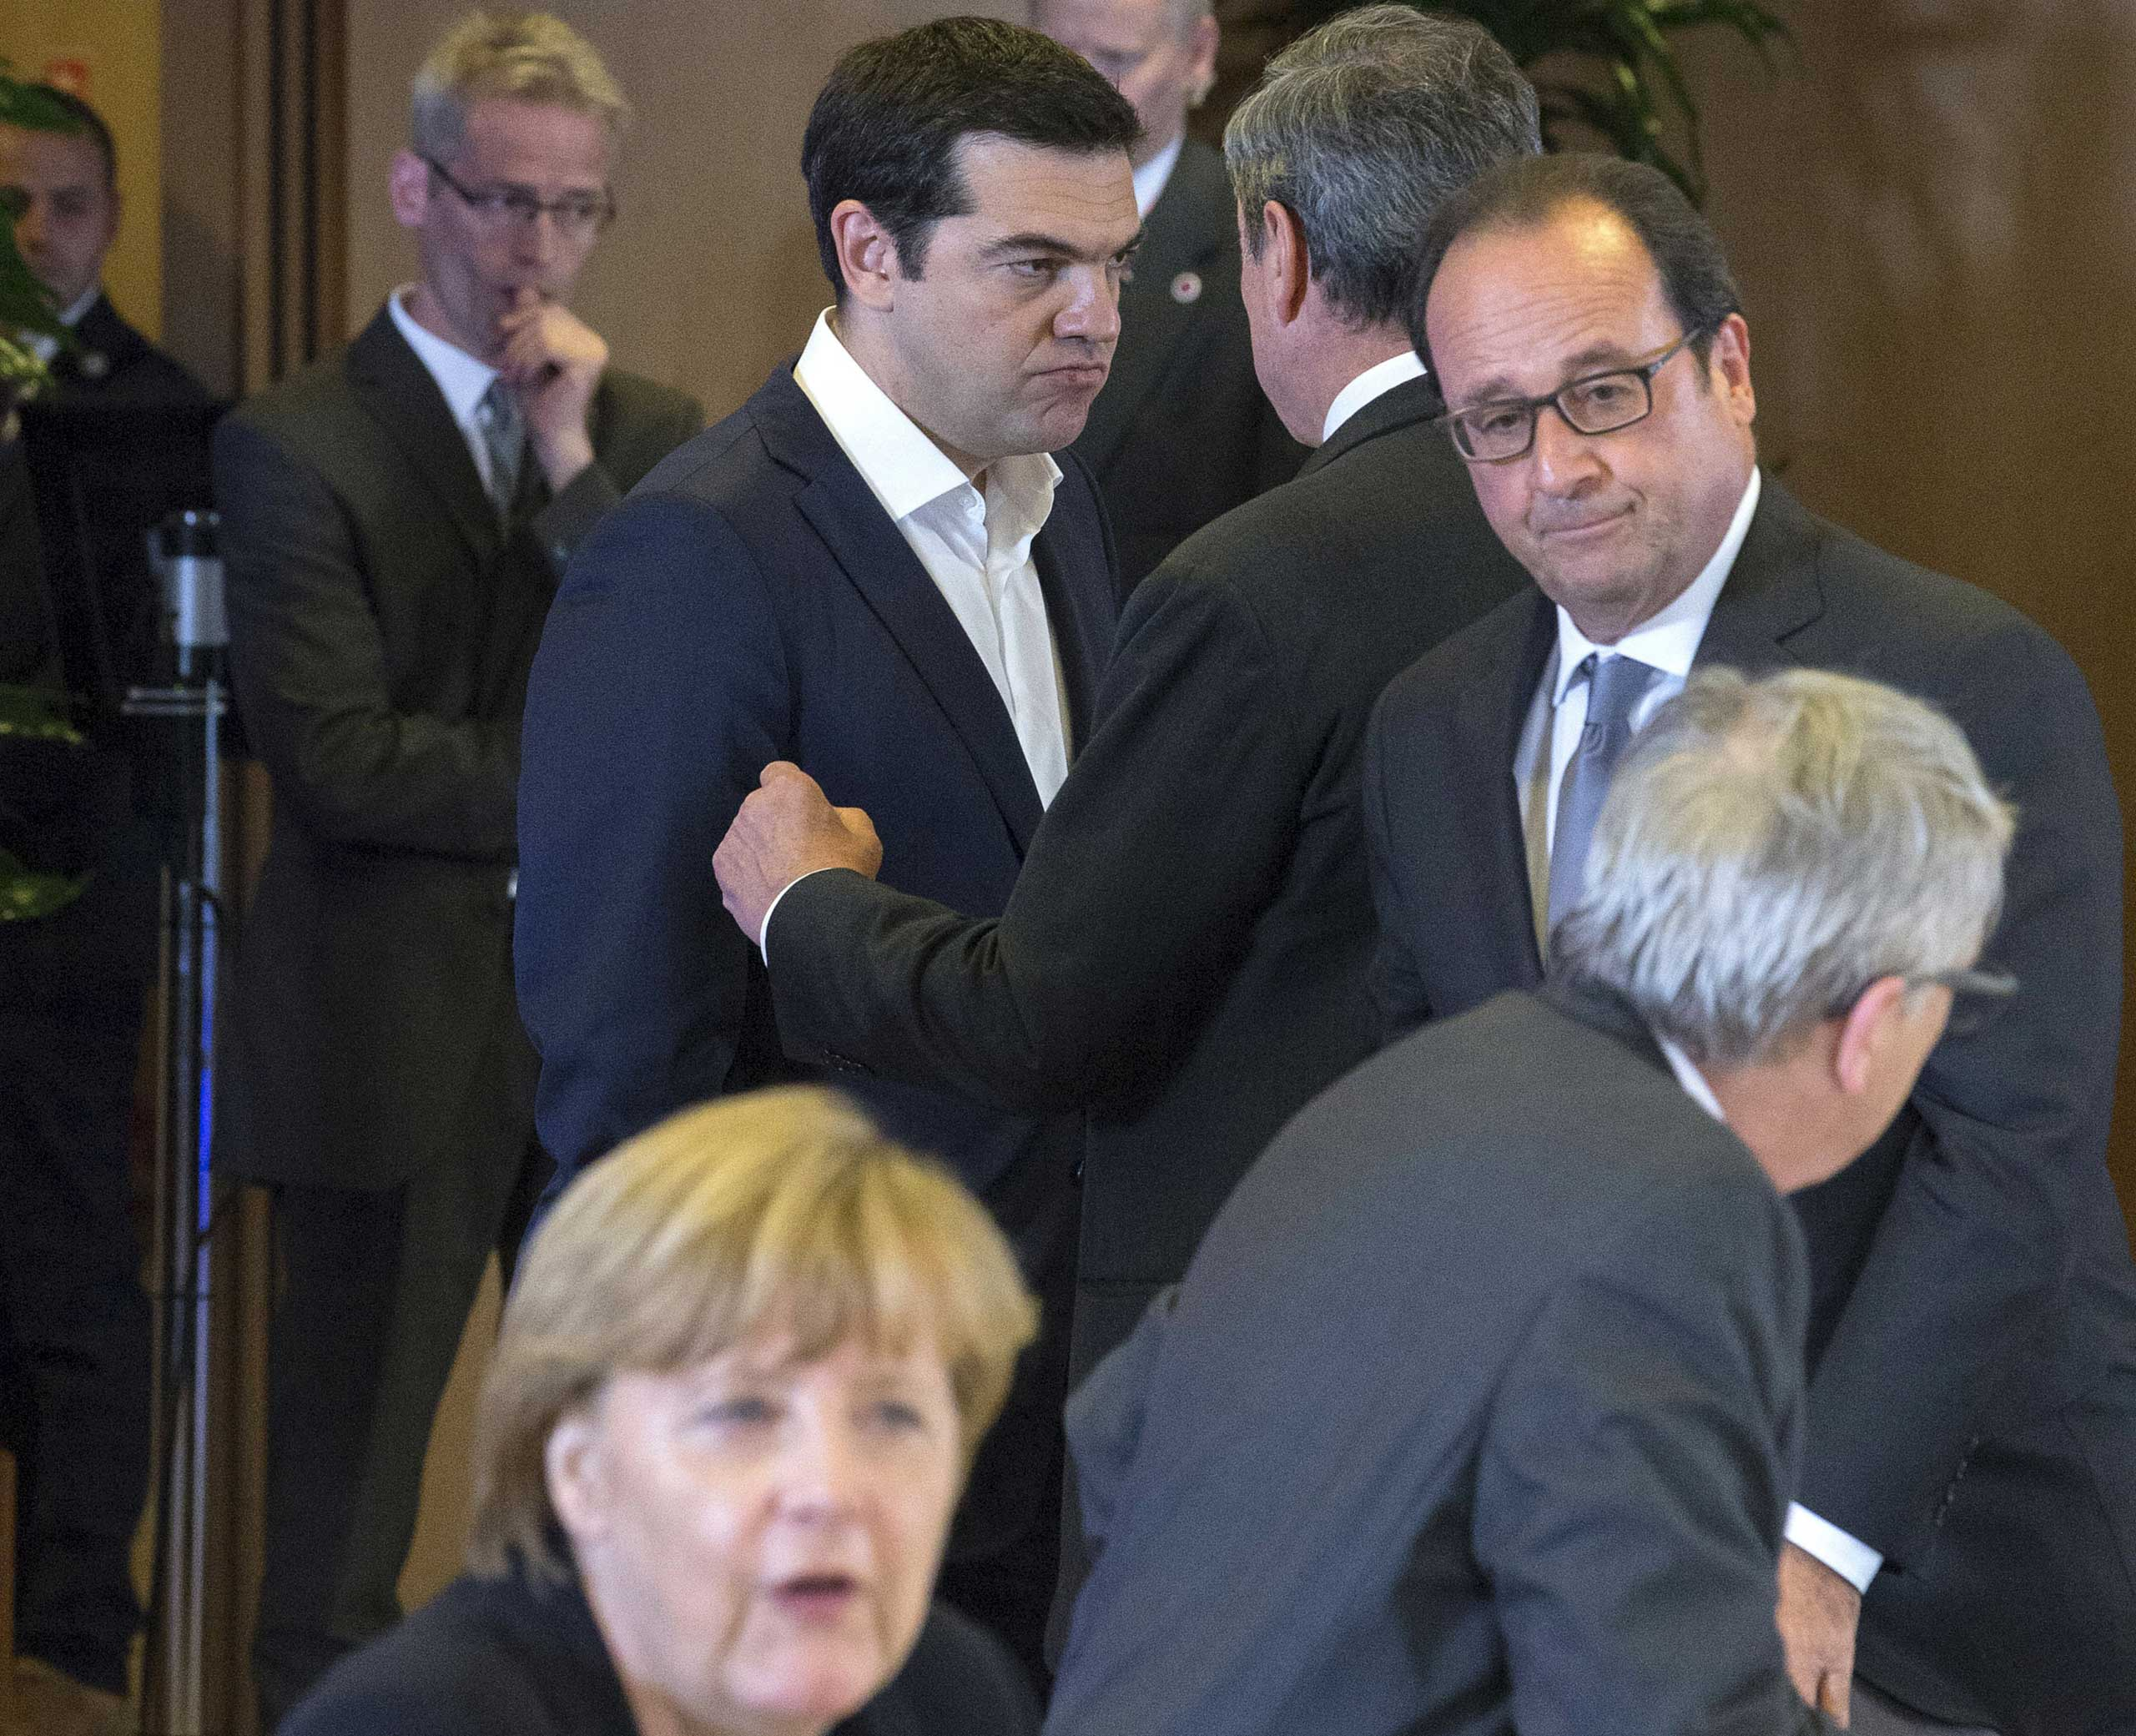 German Chancellor Angela Merkel, Greek Prime Minister Alexis Tsipras, European Central Bank President Mario Draghi, French President Francois Hollande and European Commission President Jean Claude Juncker take part in a euro zone EU leaders emergency summit on the situation in Greece in Brussels, on July 7, 2015.